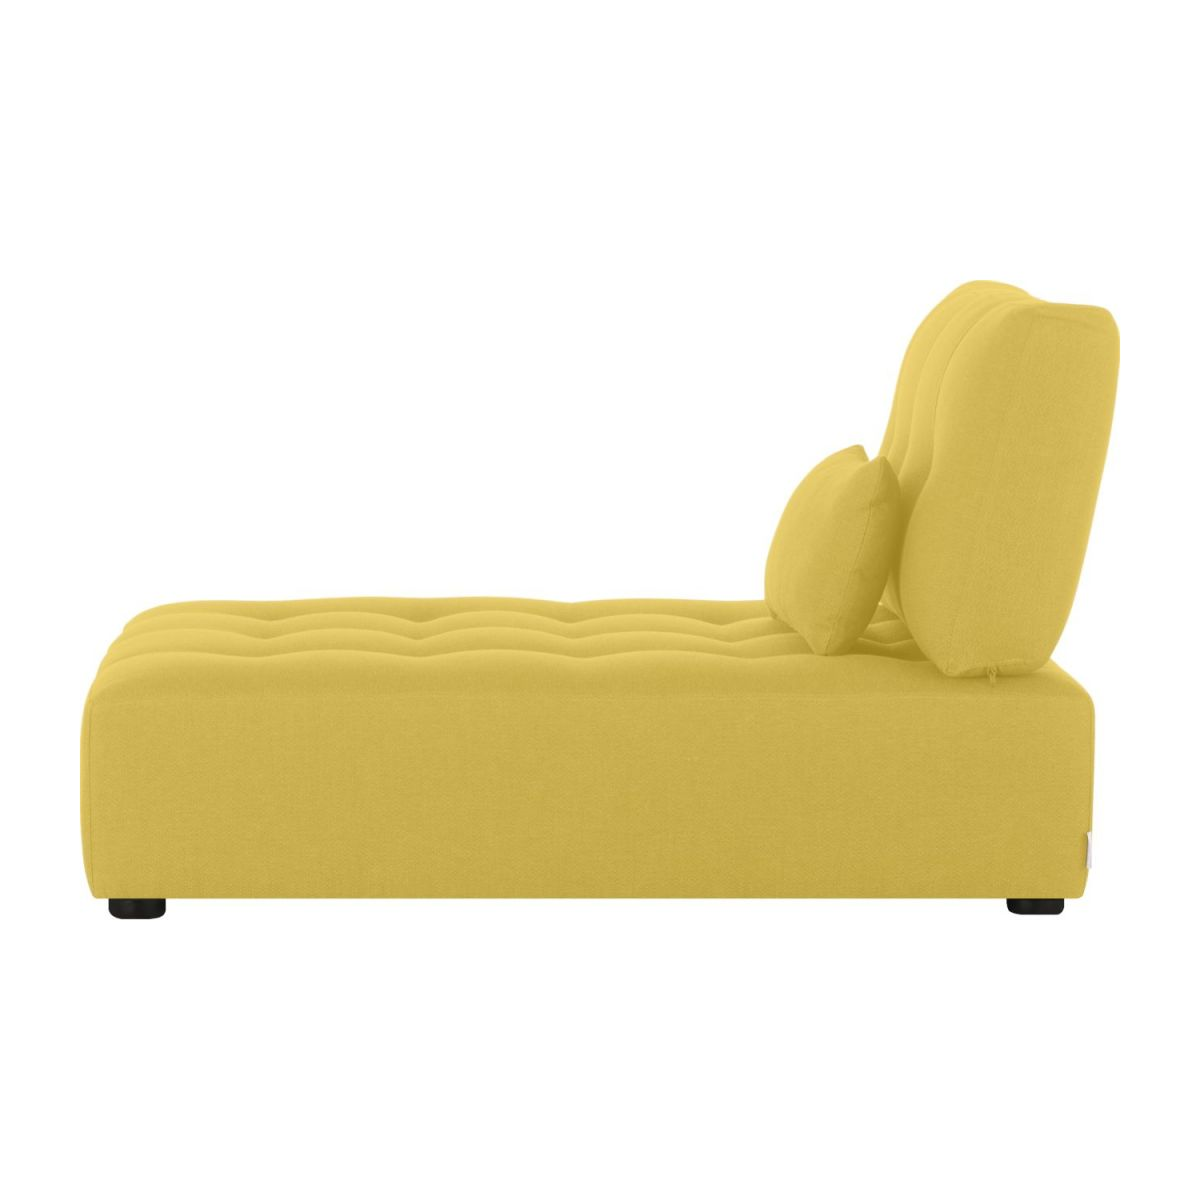 Chaiselongue de tela-amarillo mostaza n°4